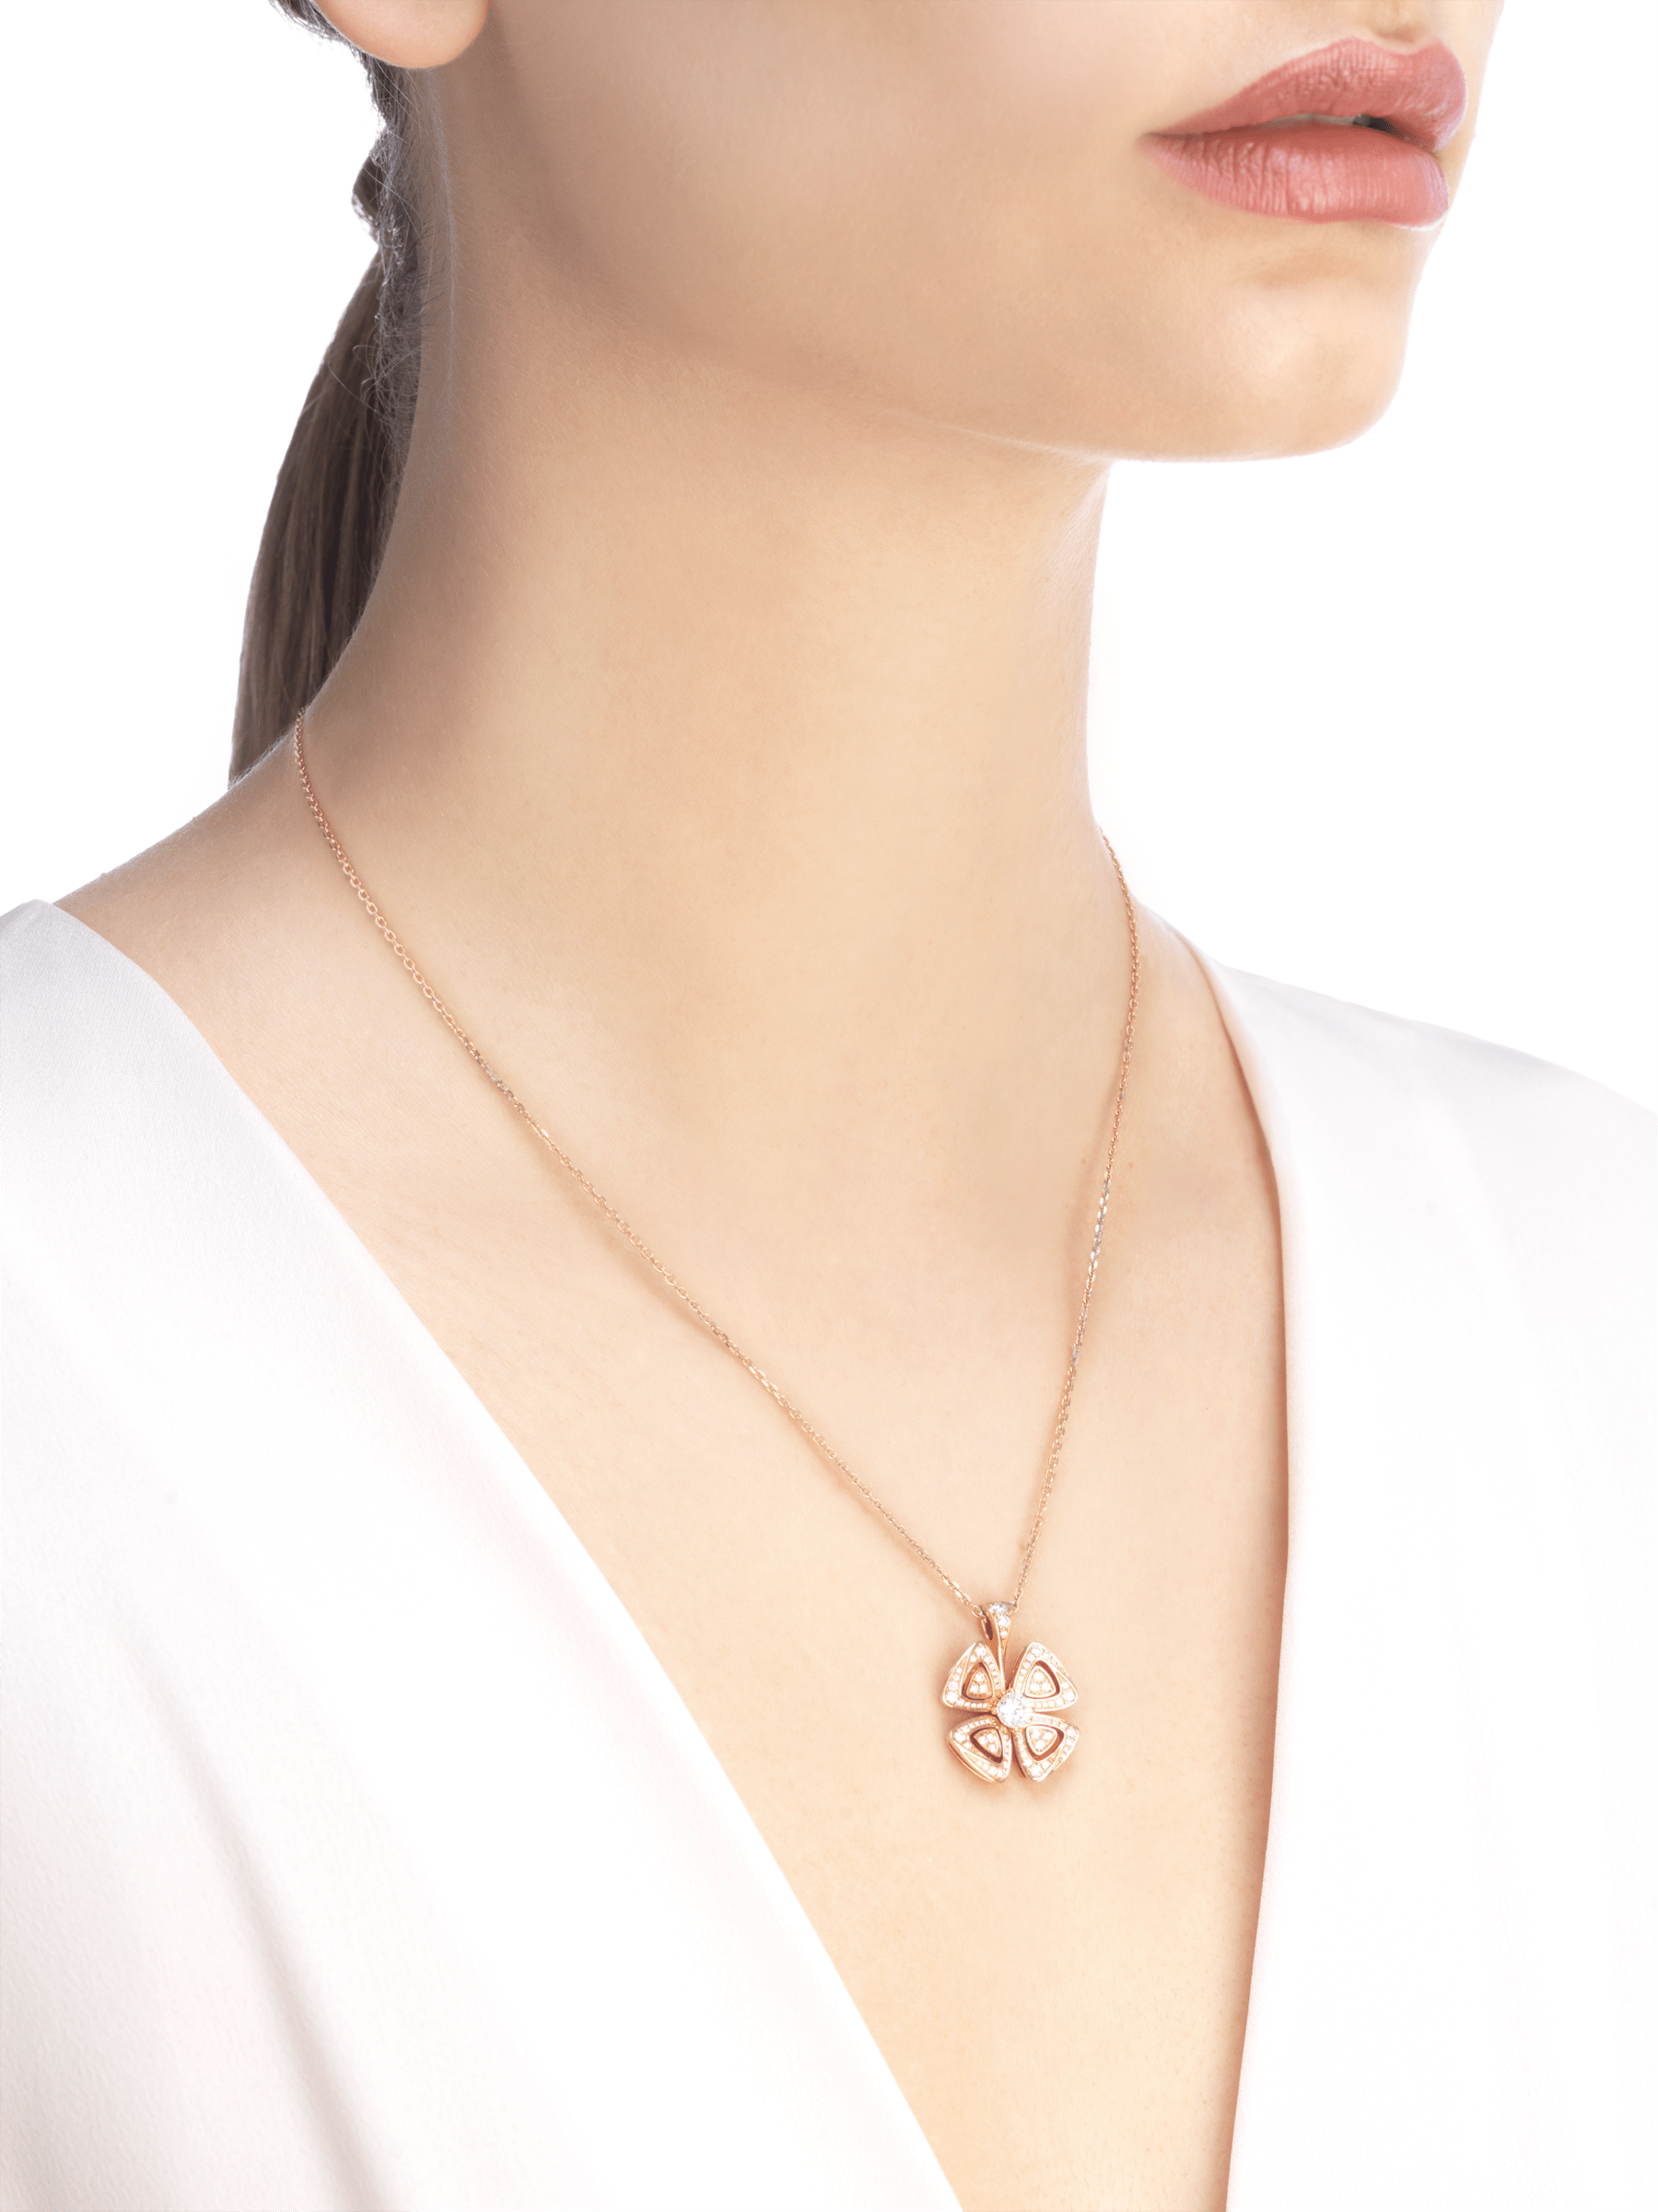 Collier Fiorever en or rose 18 K serti d'un diamant de centre avec pavé diamants 355885 image 5